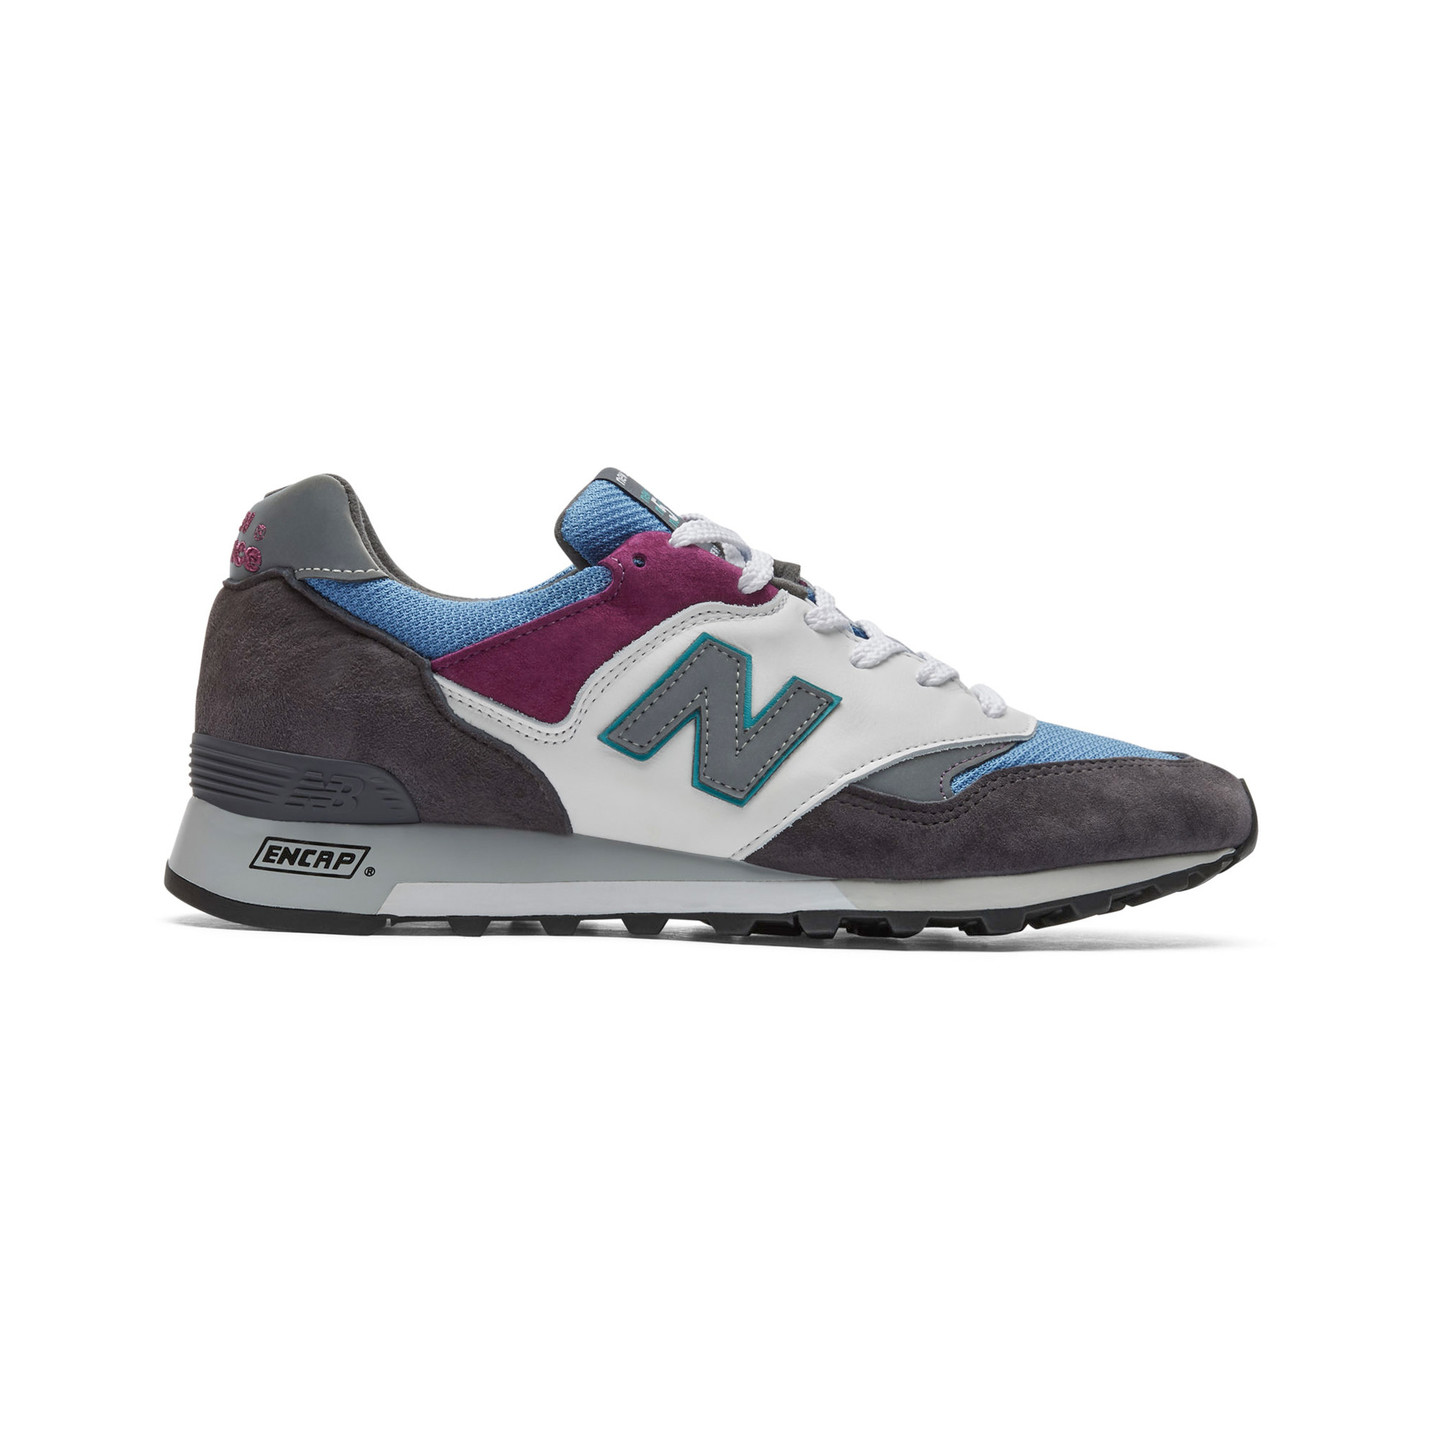 New Balance M577 GBP - Made in England Dark Grey / Blue / White M577GBP